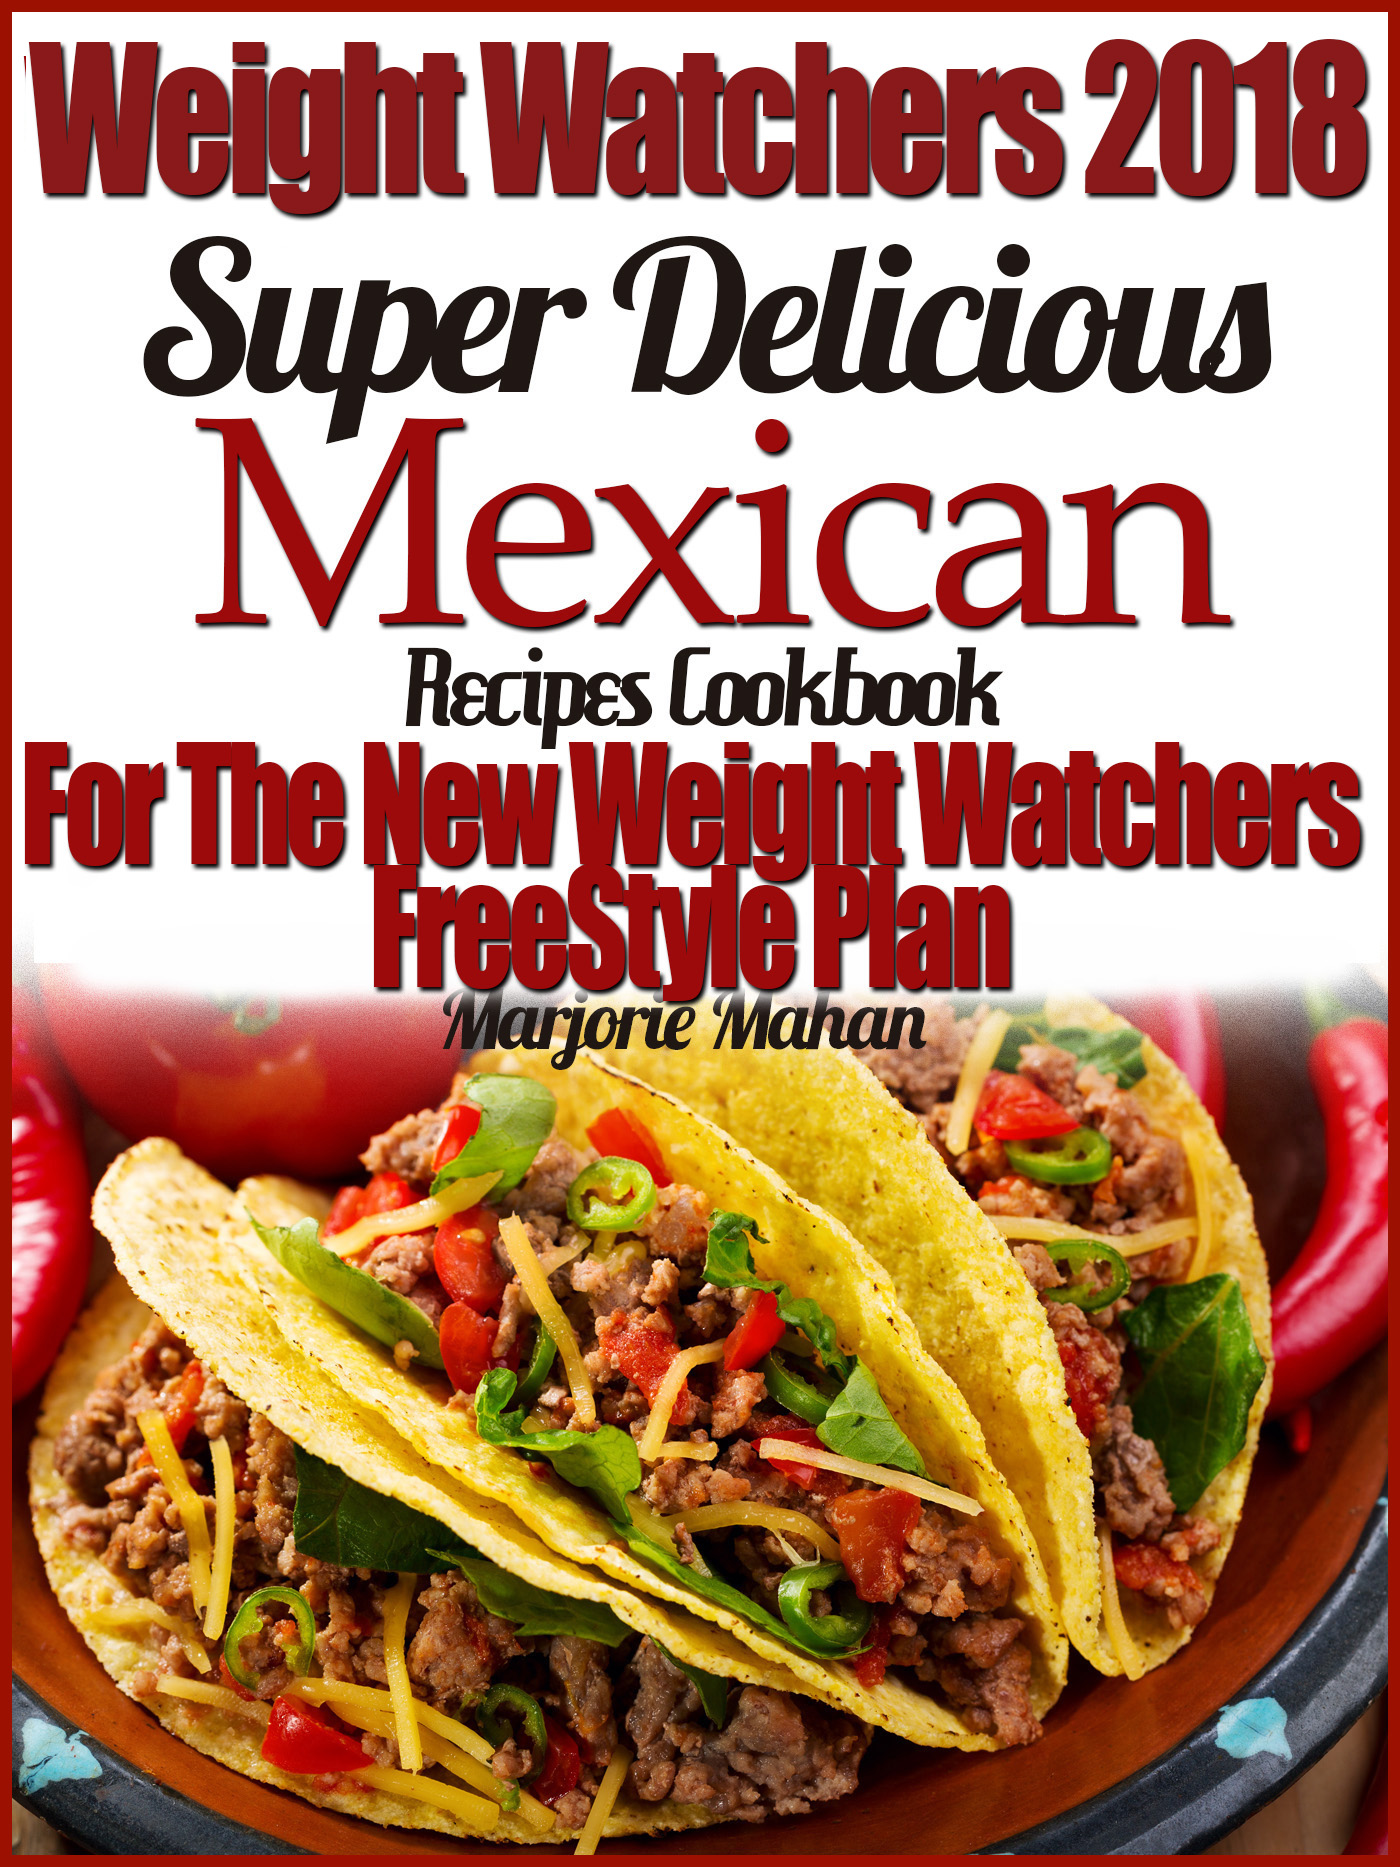 Smashwords weight watchers 2018 super delicious mexican weight watchers 2018 super delicious mexican smartpoints recipes cookbook for the new weight watchers freestyle plan forumfinder Gallery